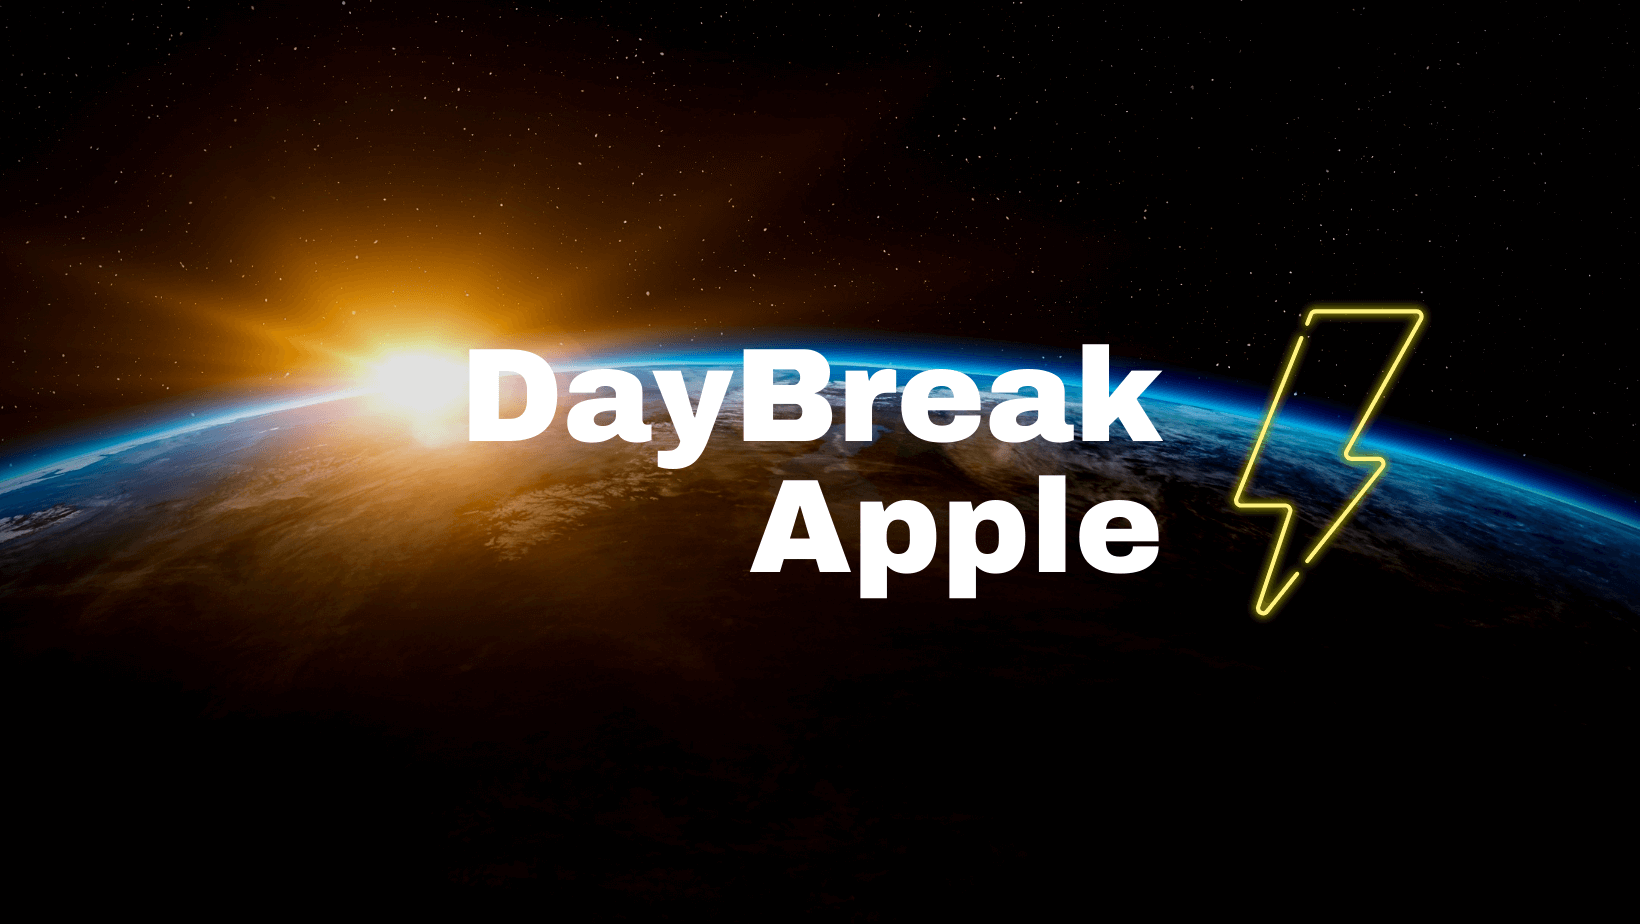 Apple-Initiative-gegen-den-Klimawandel-dickeres-iPhone-13-langweiliges-Event-am-Dienstag-Daybreak-Apple